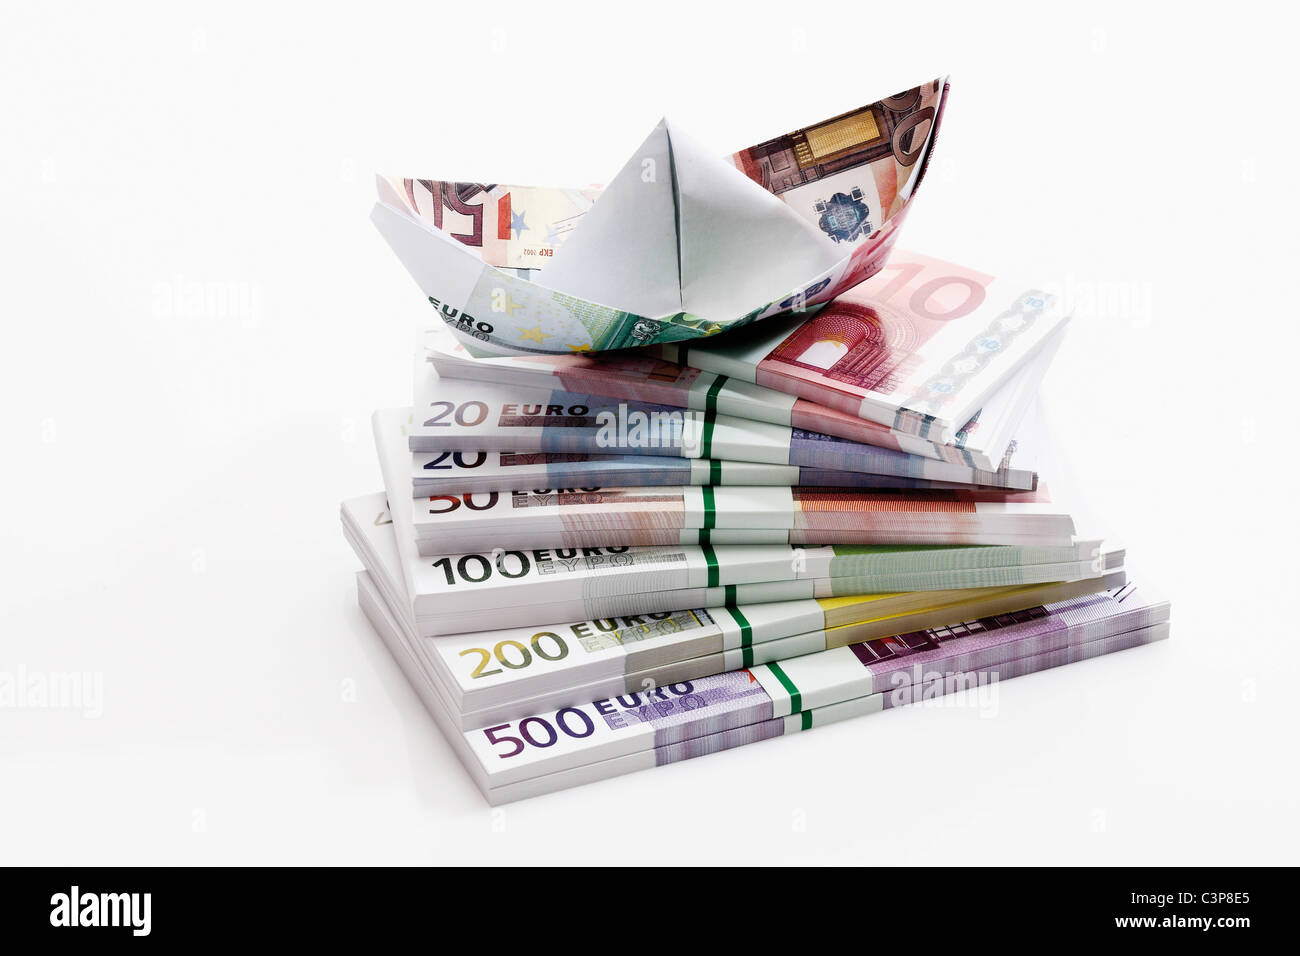 Euro paper boat on bundles of euro notes, close-up - Stock Image